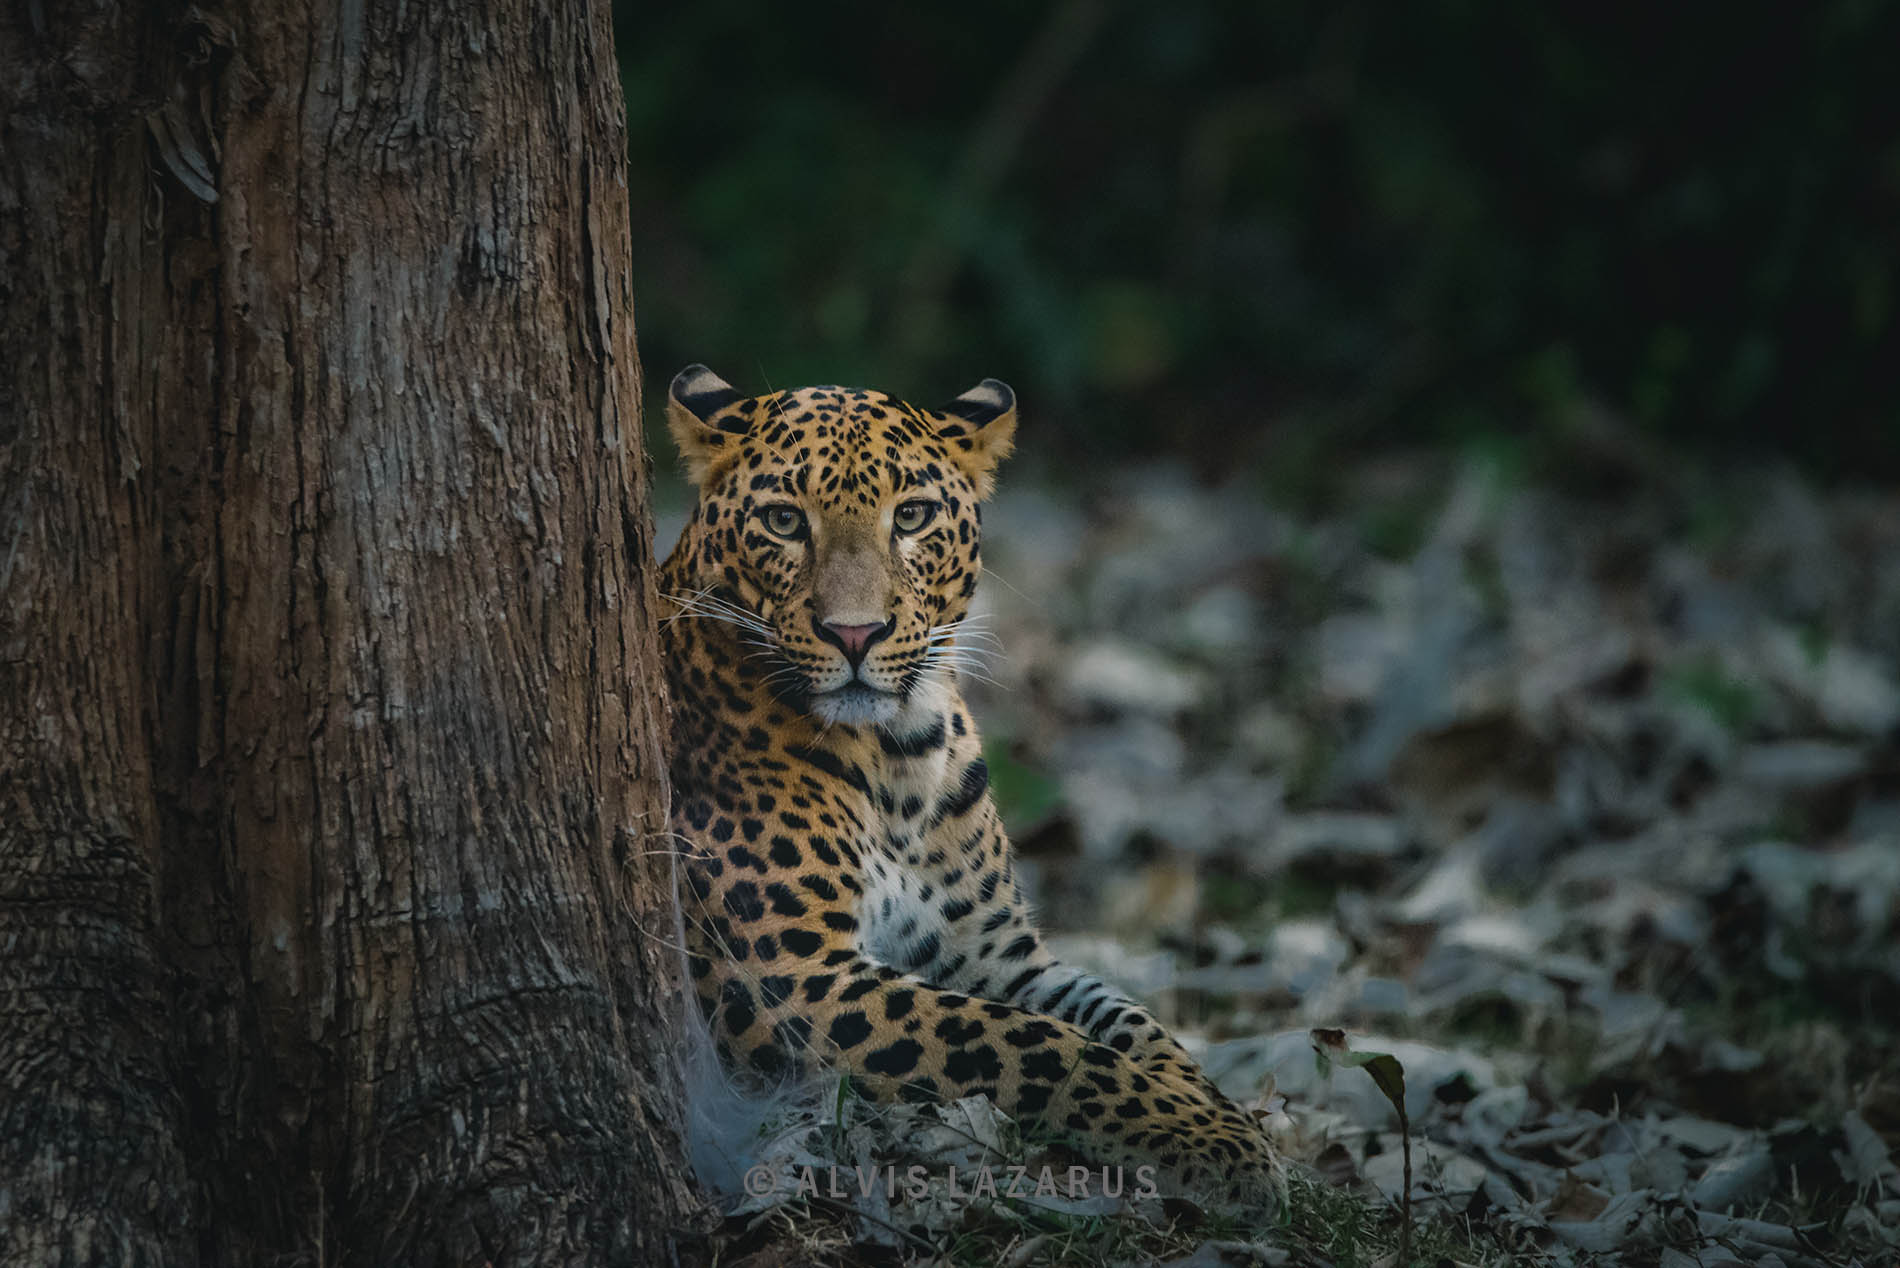 leopard-portrait leopard-on-ground indian-leopard leopard-habitat leopard-picture wildife-photography award-winning-wildlife-photographs